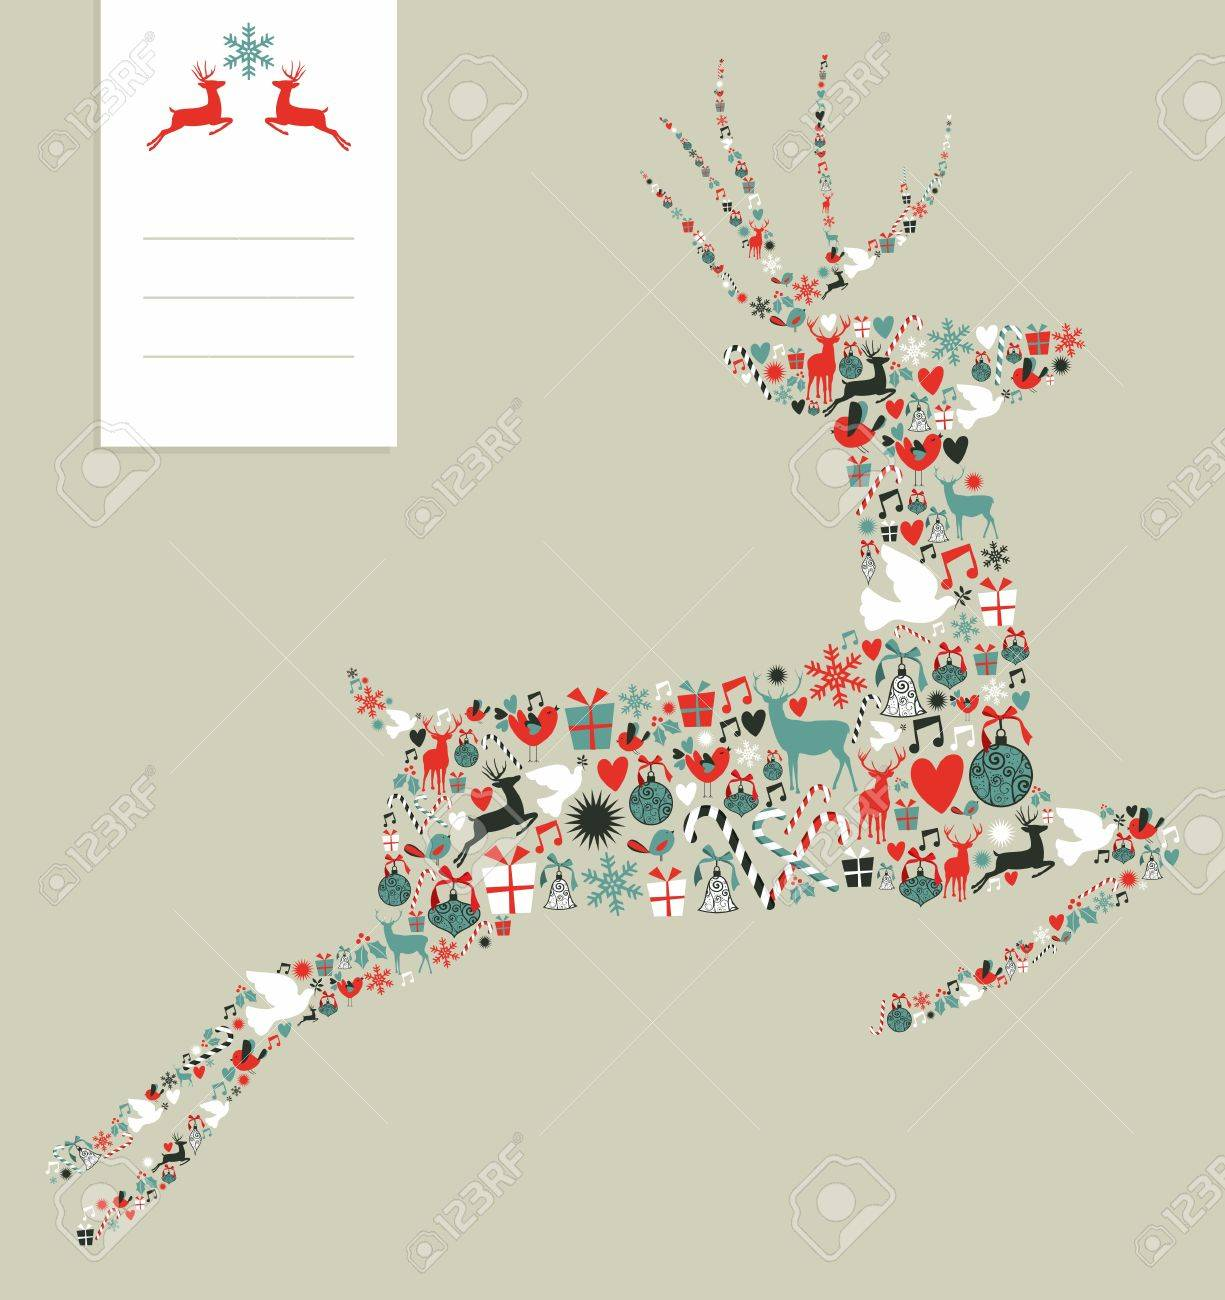 Christmas icons set in jumping deer greeting card background.  illustration layered for easy manipulation and custom coloring. Stock Vector - 16105712